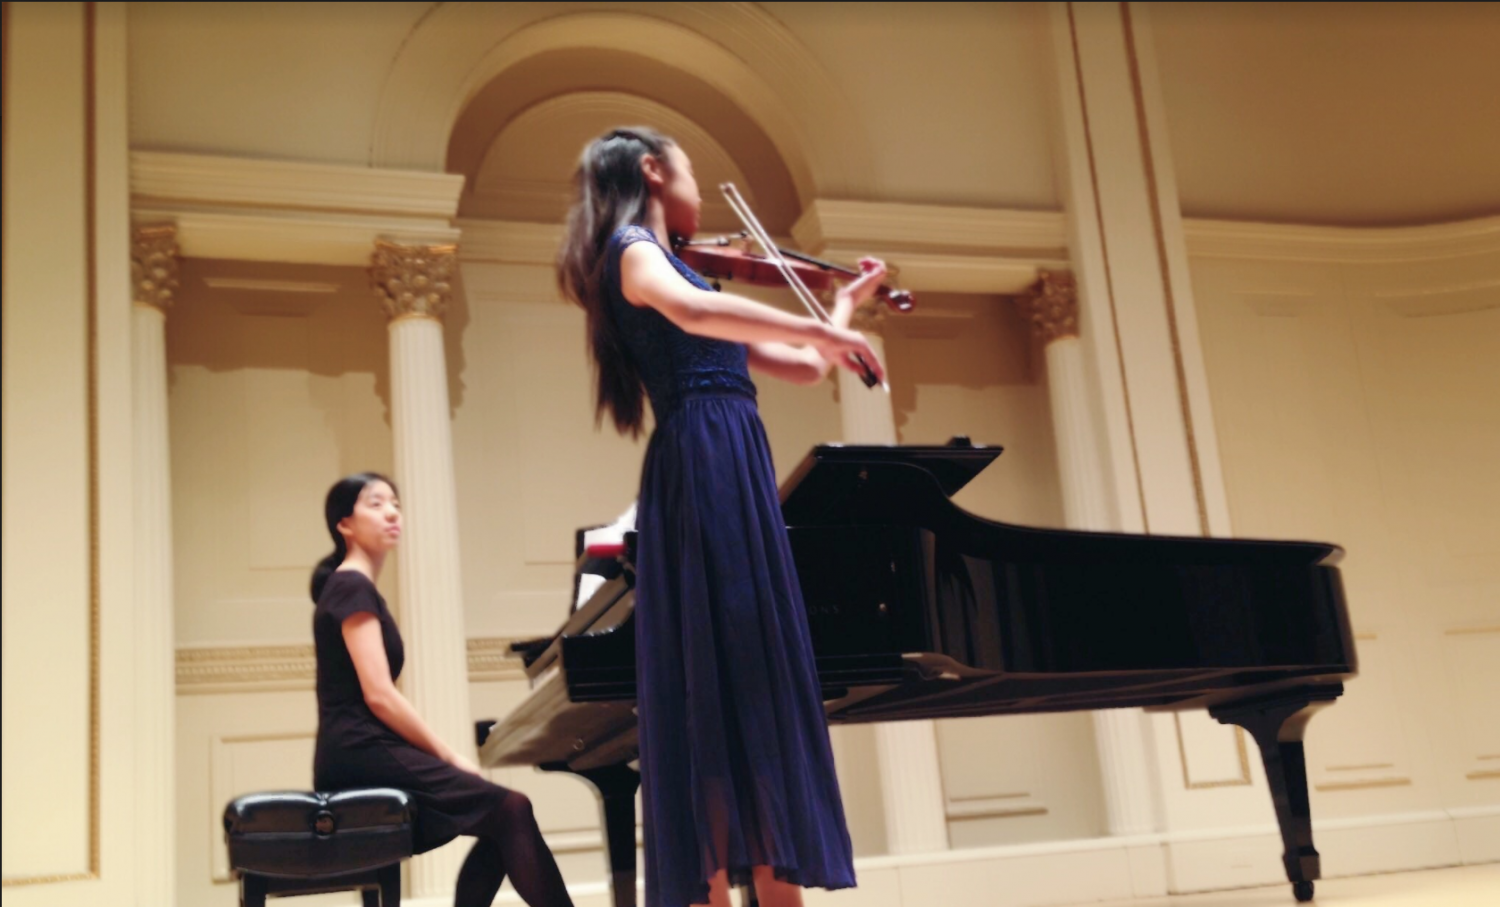 Constance Horng (11) performs at Weill Hall at Carnegie Hall last year. Constance has been experimenting with music since she was five.